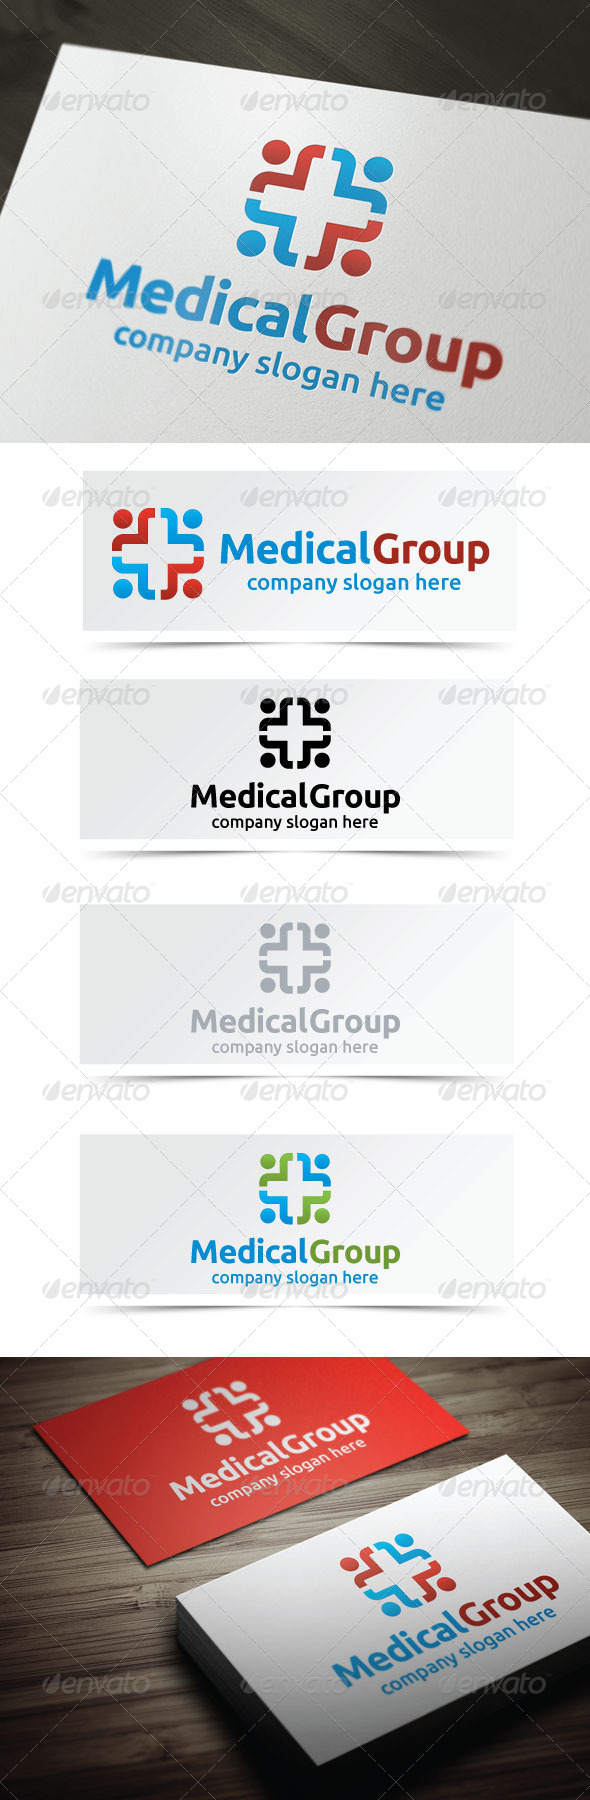 GraphicRiver Medical Group 4600056